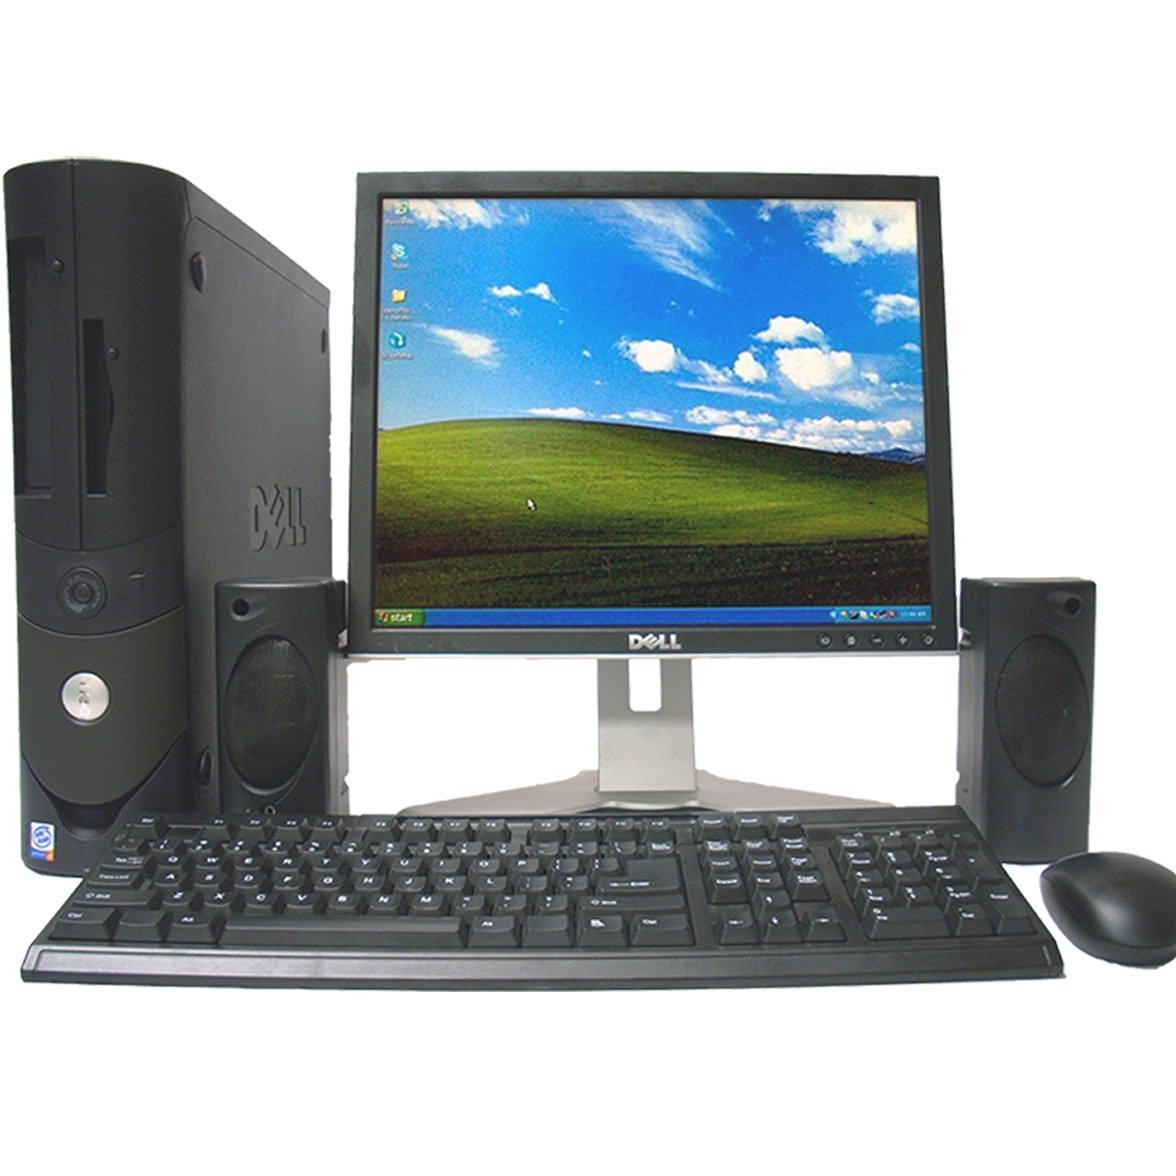 Buy Dell Optiplex Computer with 19 inch LCD Flat Panel